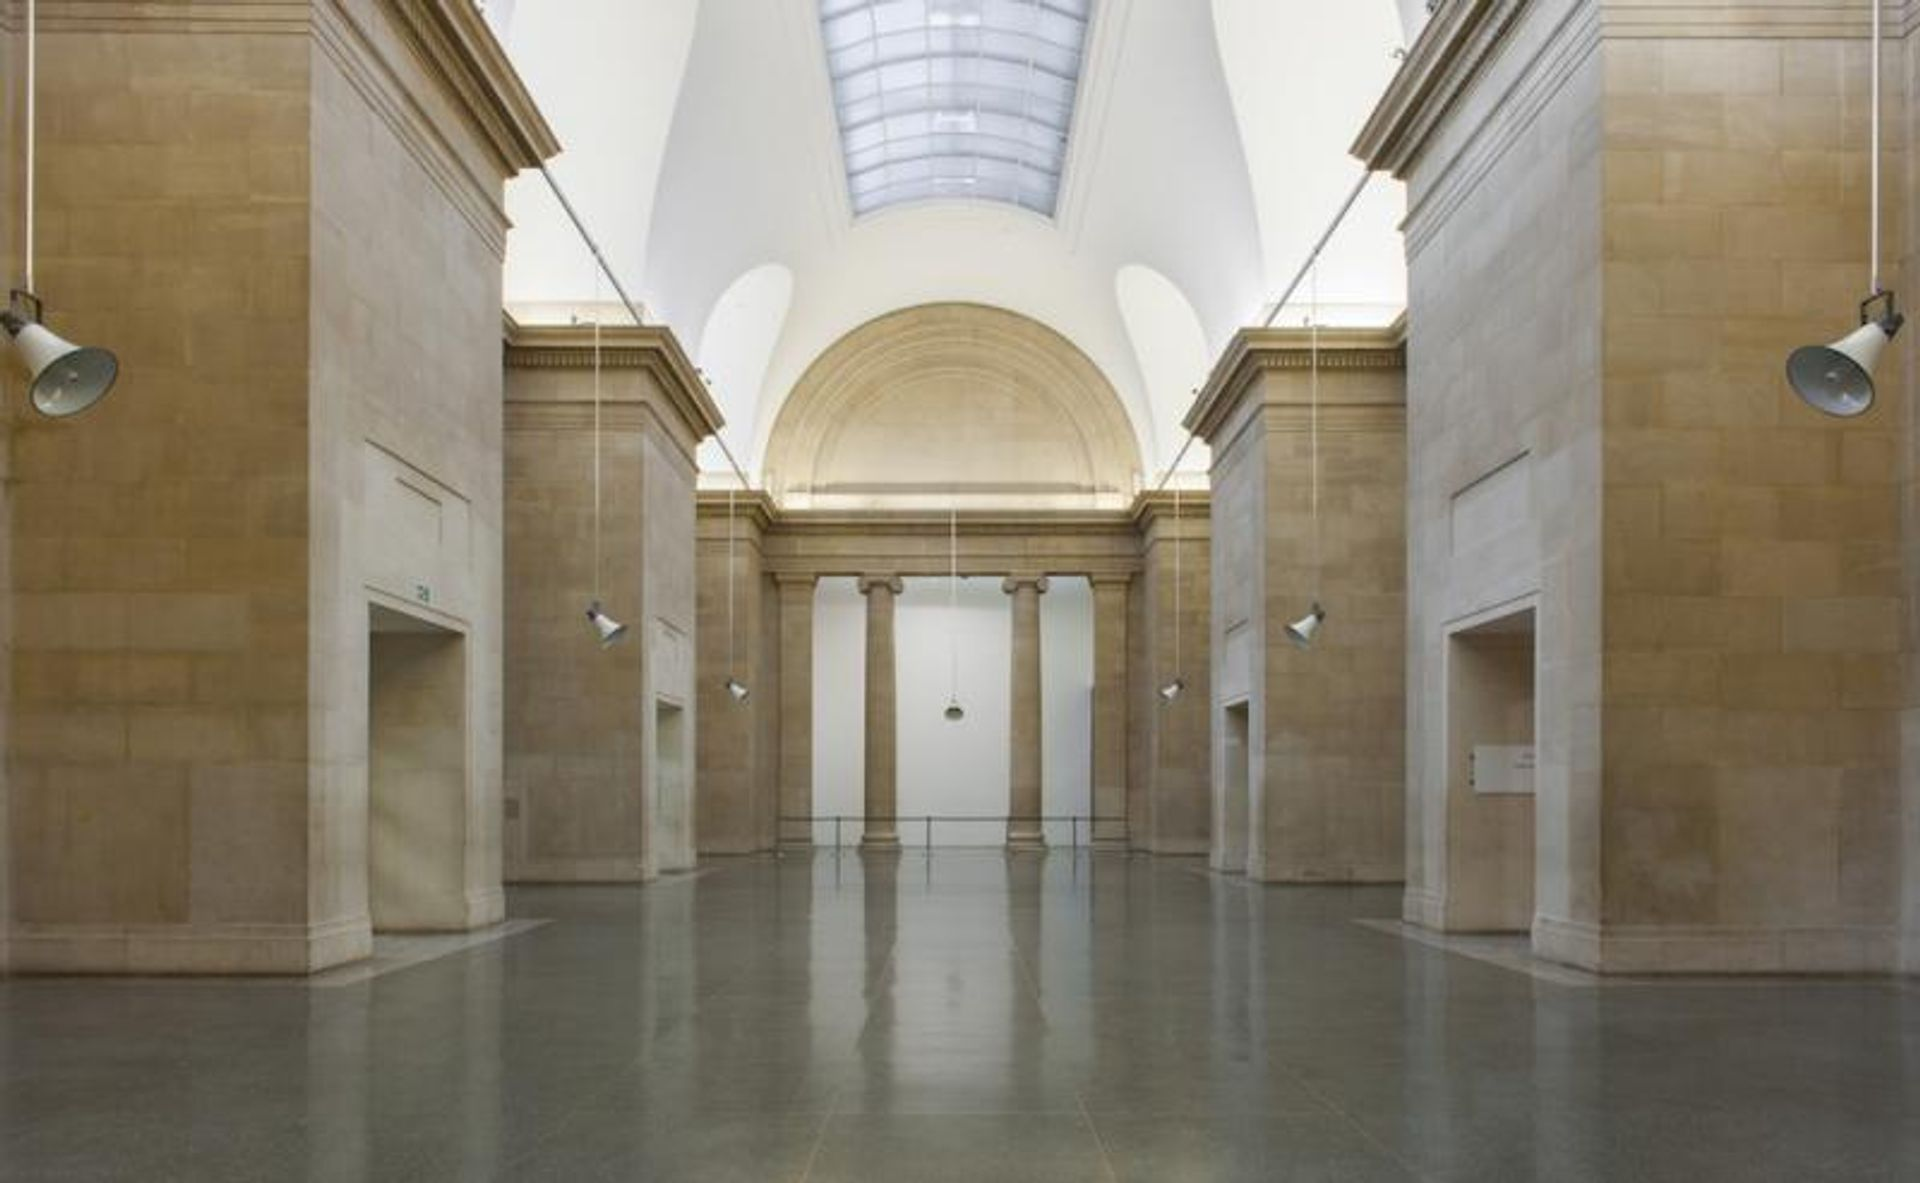 The Duveen Galleries at the Tate Britain in London, one of the many UK museums which faces uncertainty due to the coronavirus pandemic © Susan Philips Horiz